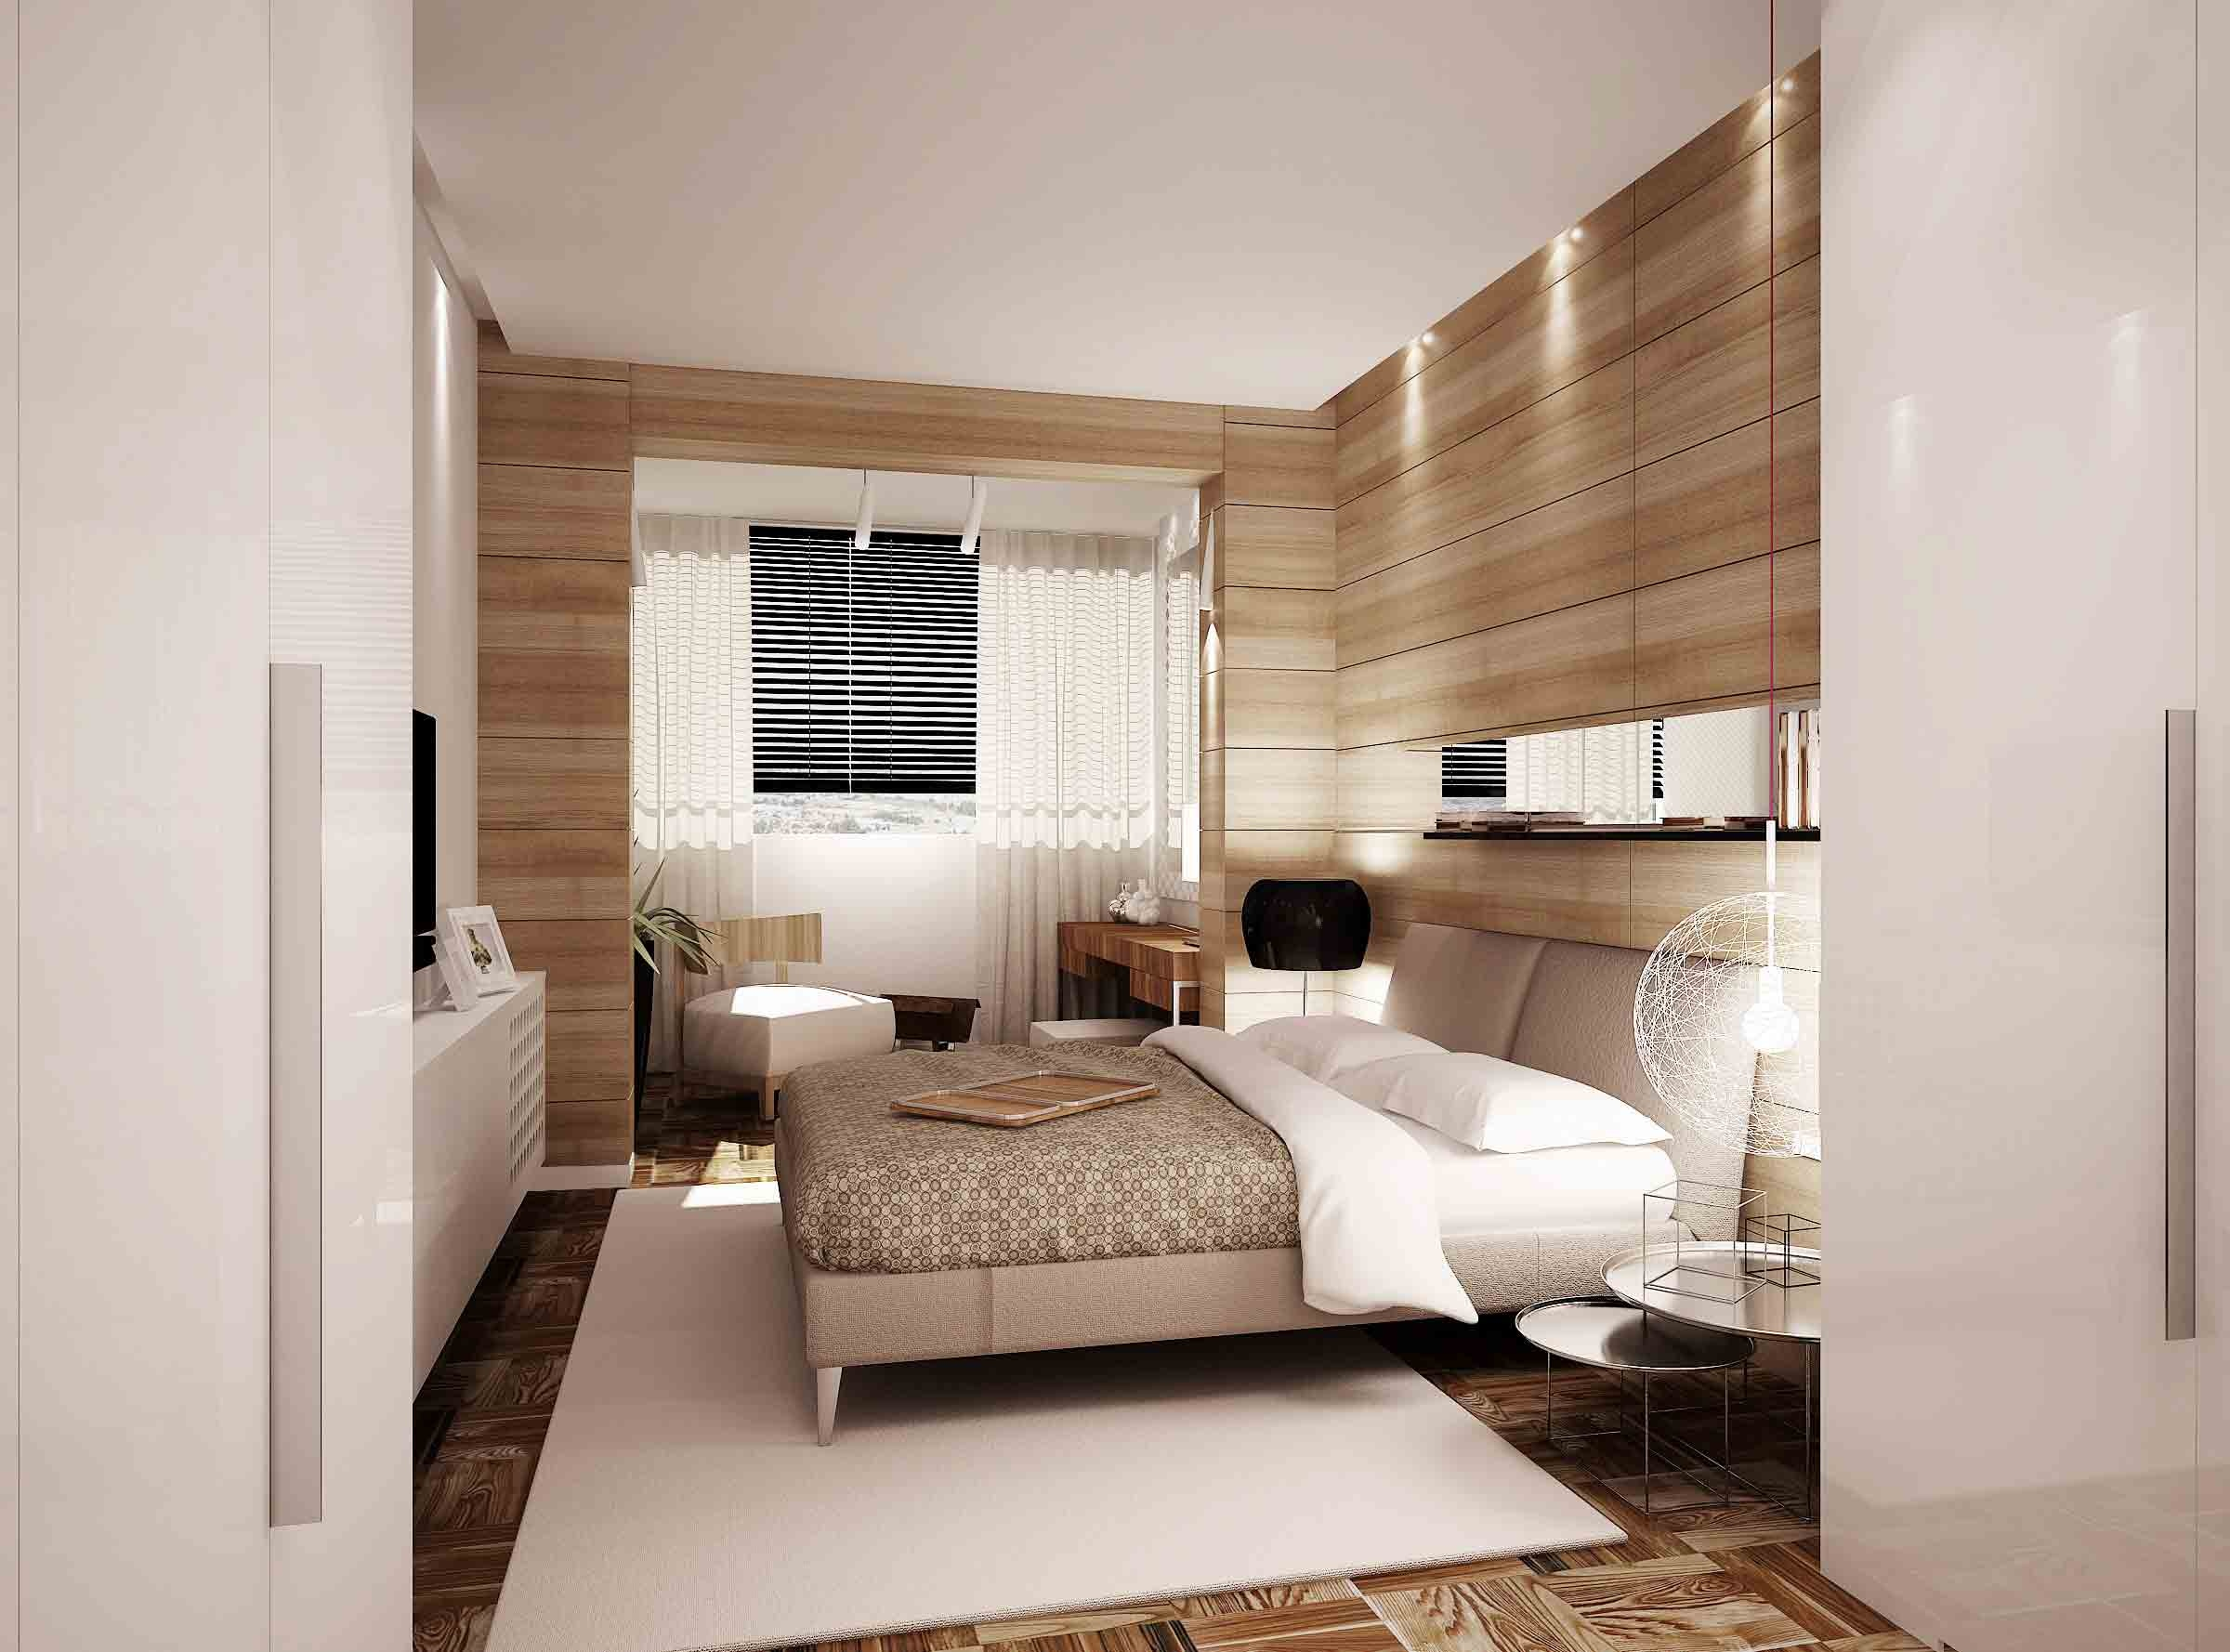 Interior Design Styles 2014 modern bedroom design ideas for rooms of any size